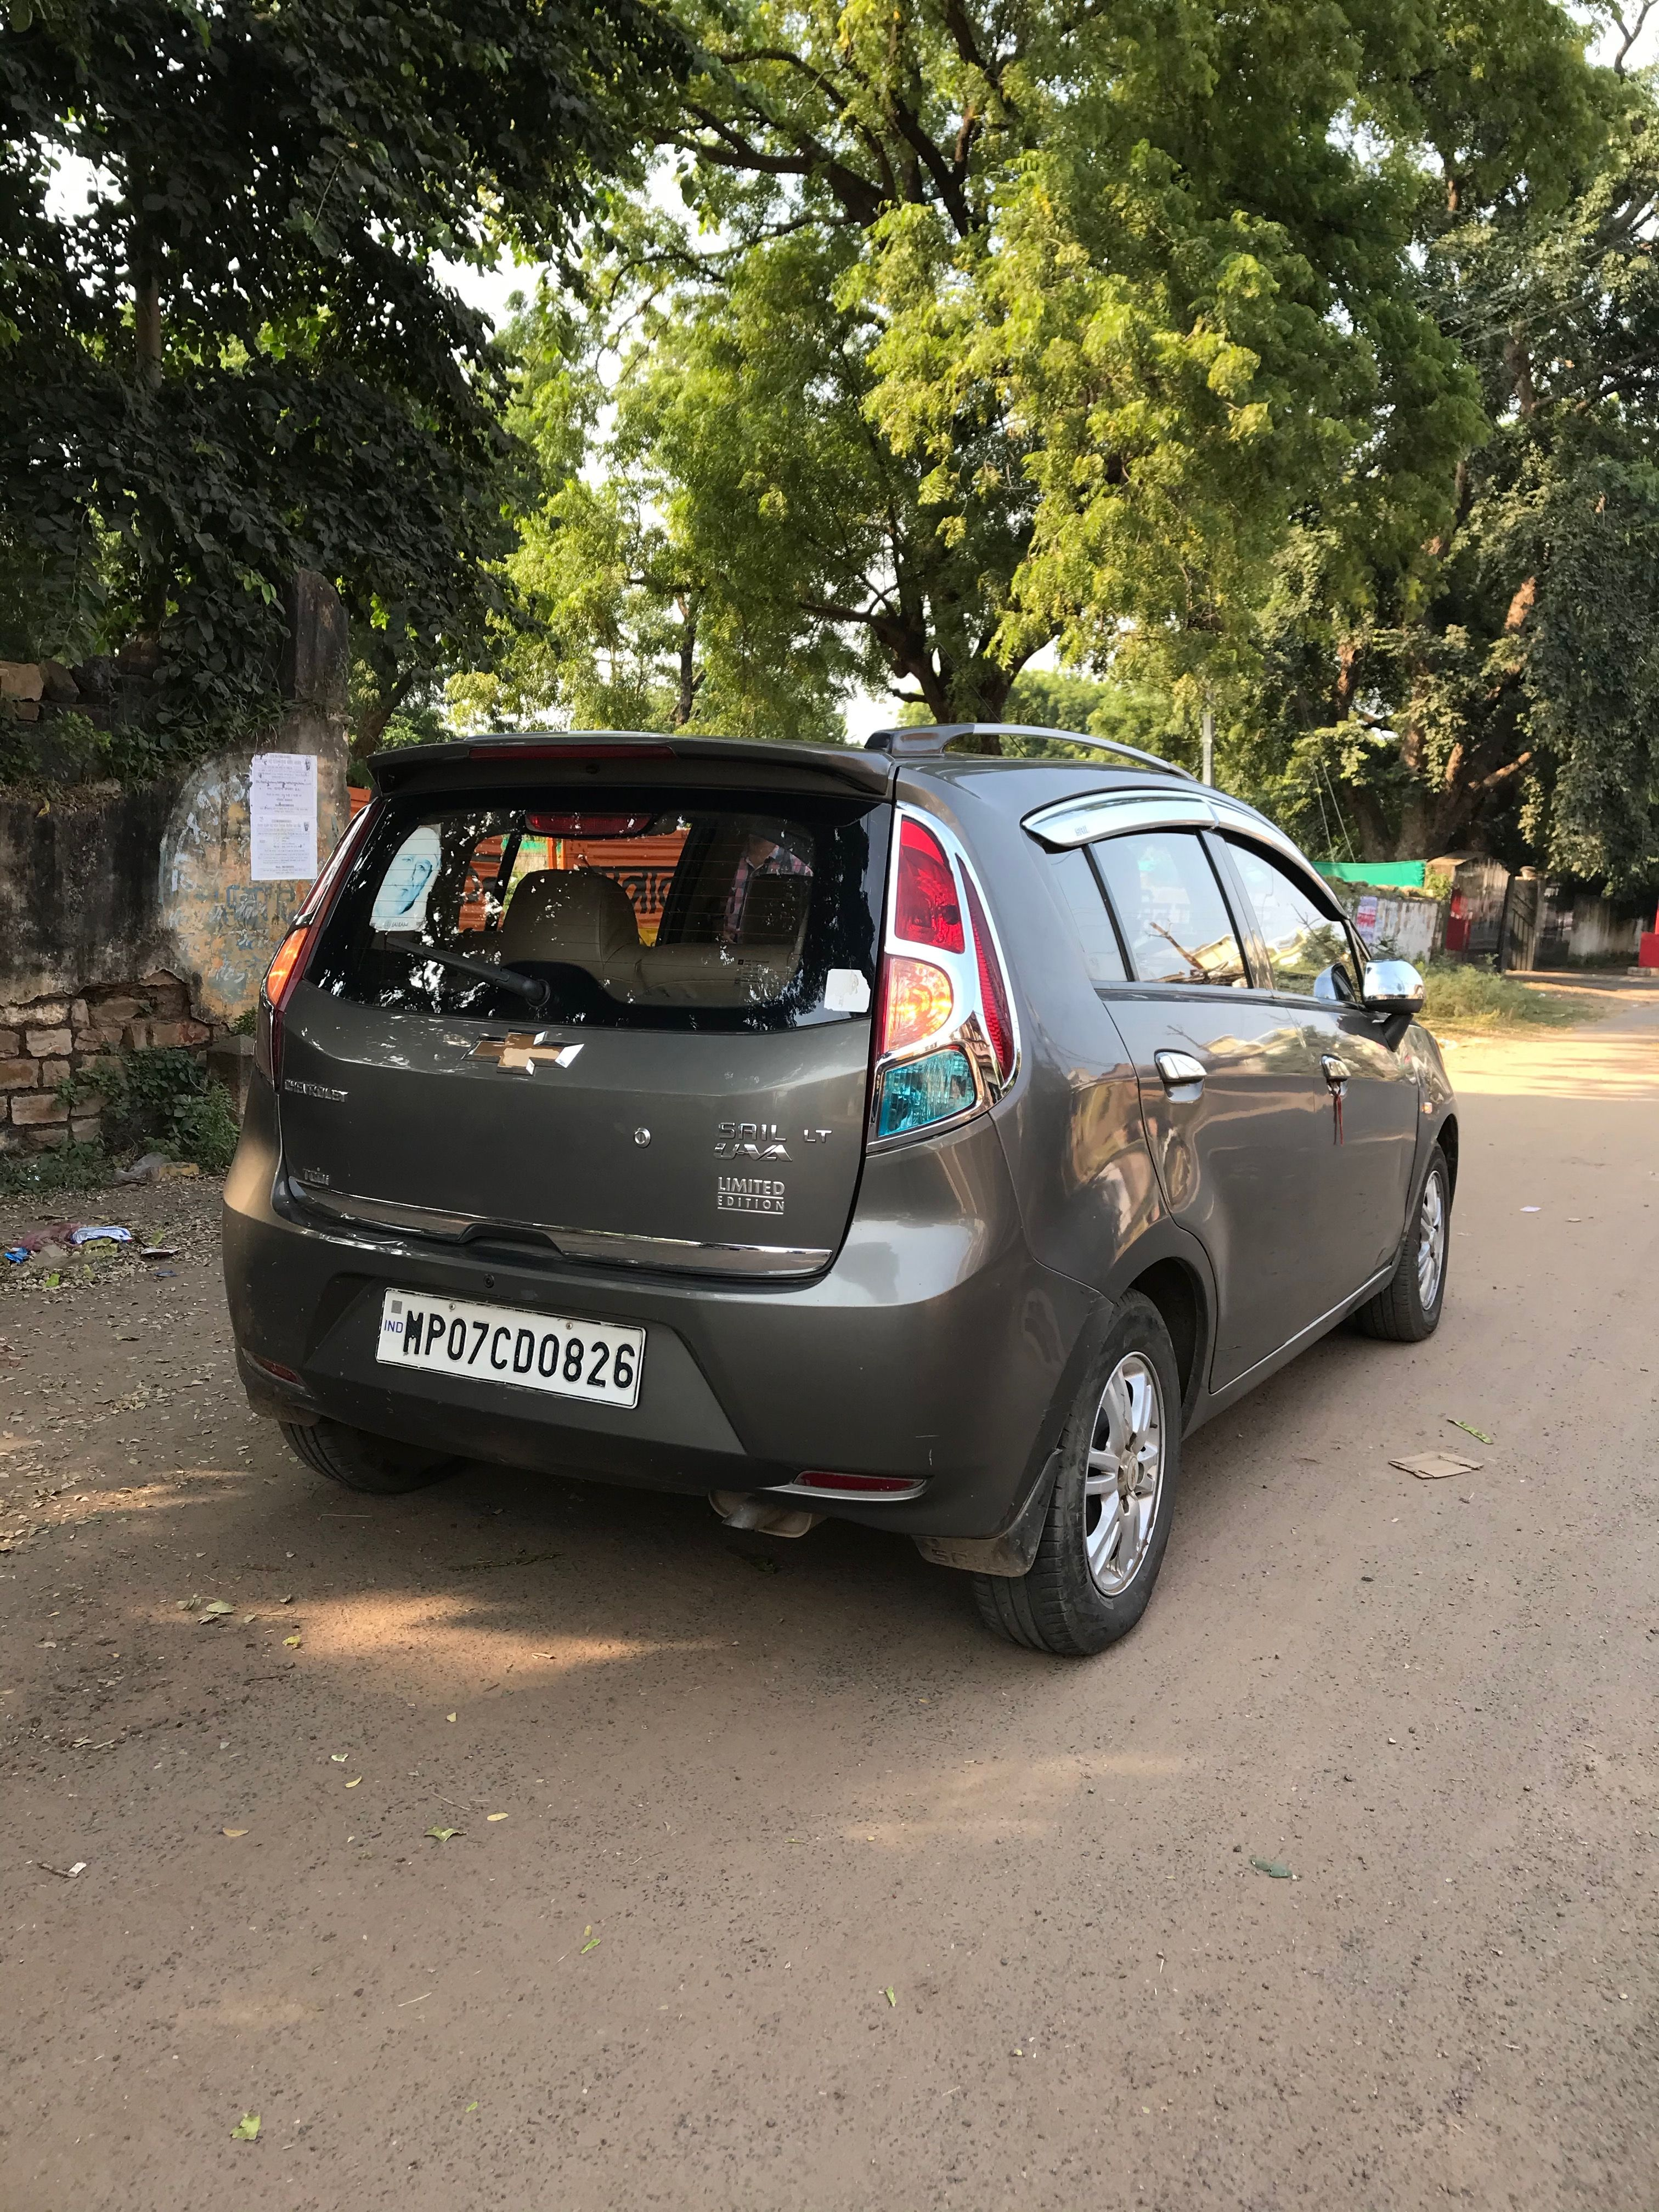 Chevroletsailuva When Life Gives You More To Purchase Contact 91 9826291484 Price 4 Lakh Chevroletsail Chevrolet Sail Chevrolet Hatchback